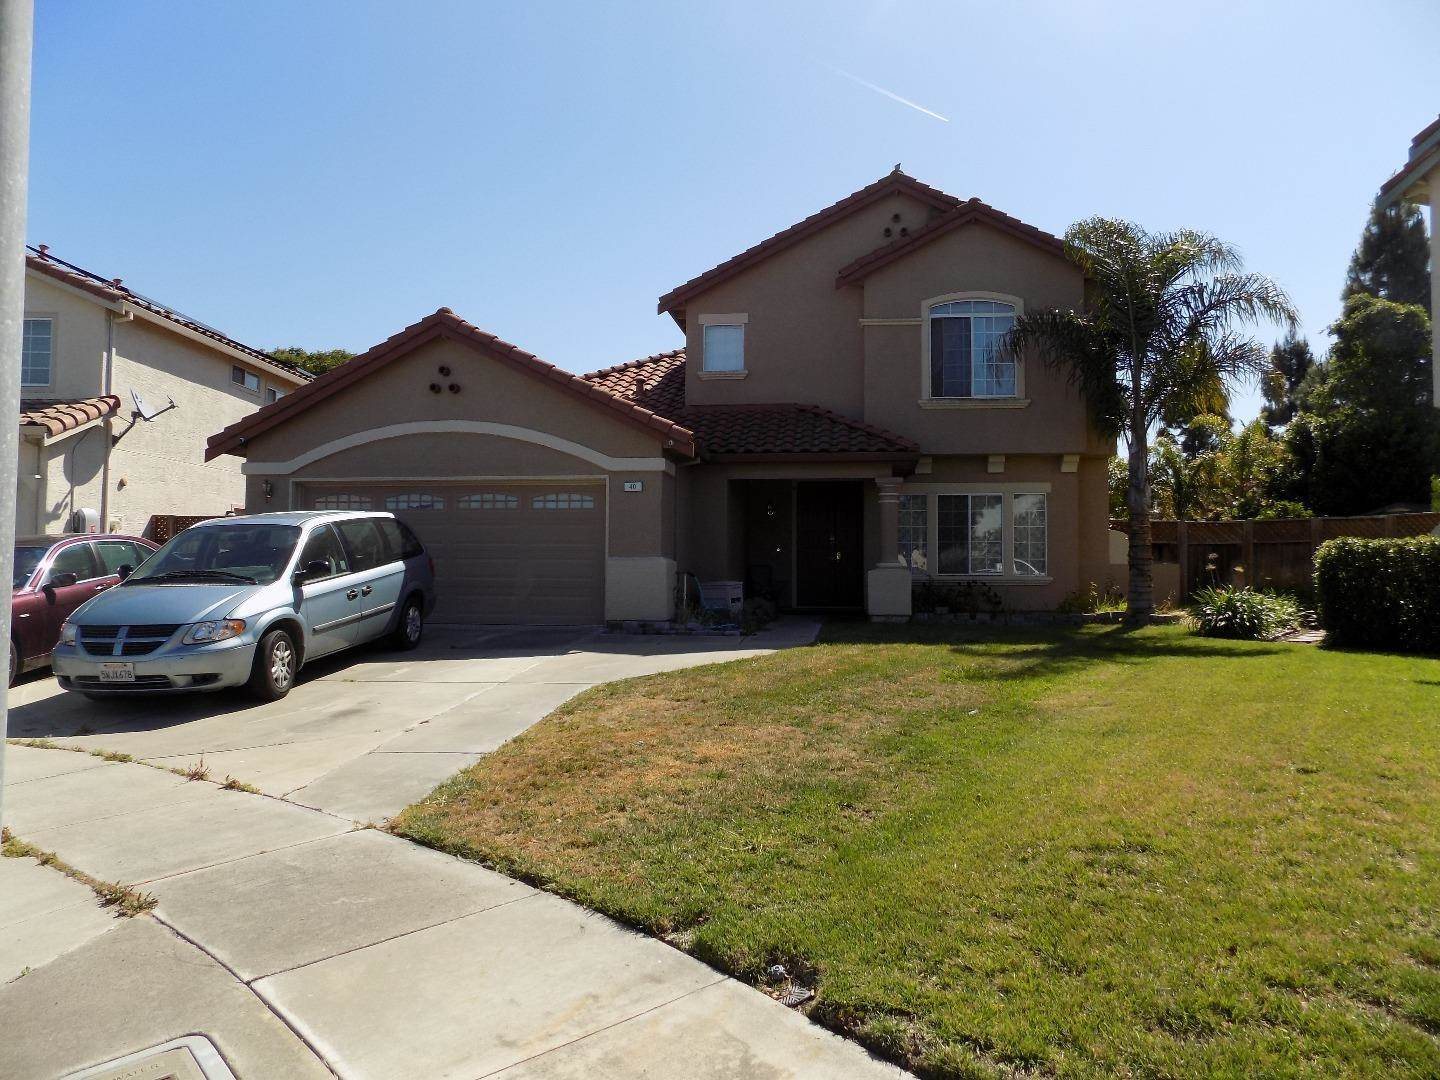 Photo of 40 Cheswick Cir  Salinas  CA